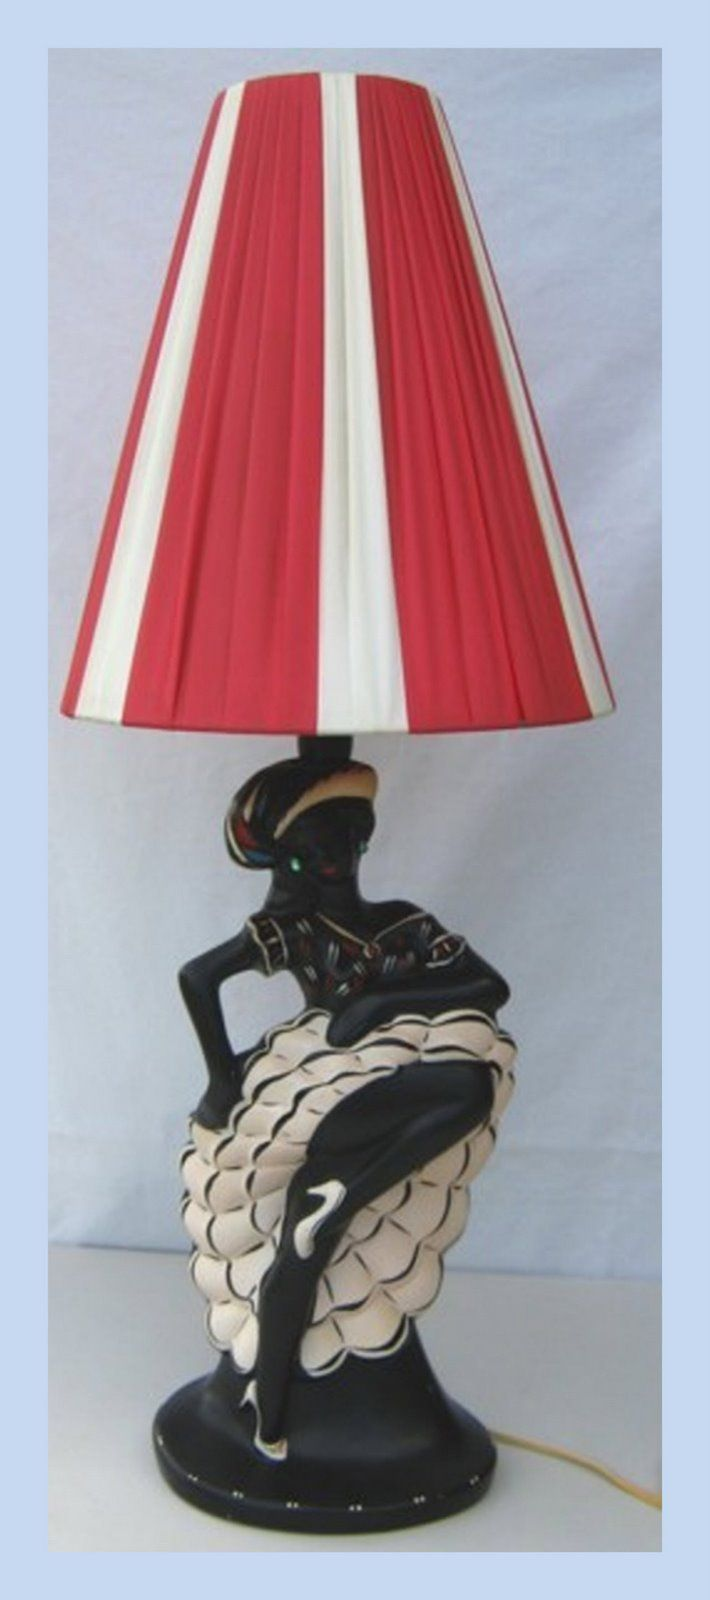 31 best barsony images on pinterest retro lamps and light australia barsony black lady lamp figurine and shade spanish dancer in excellent condition and measures approx arubaitofo Image collections